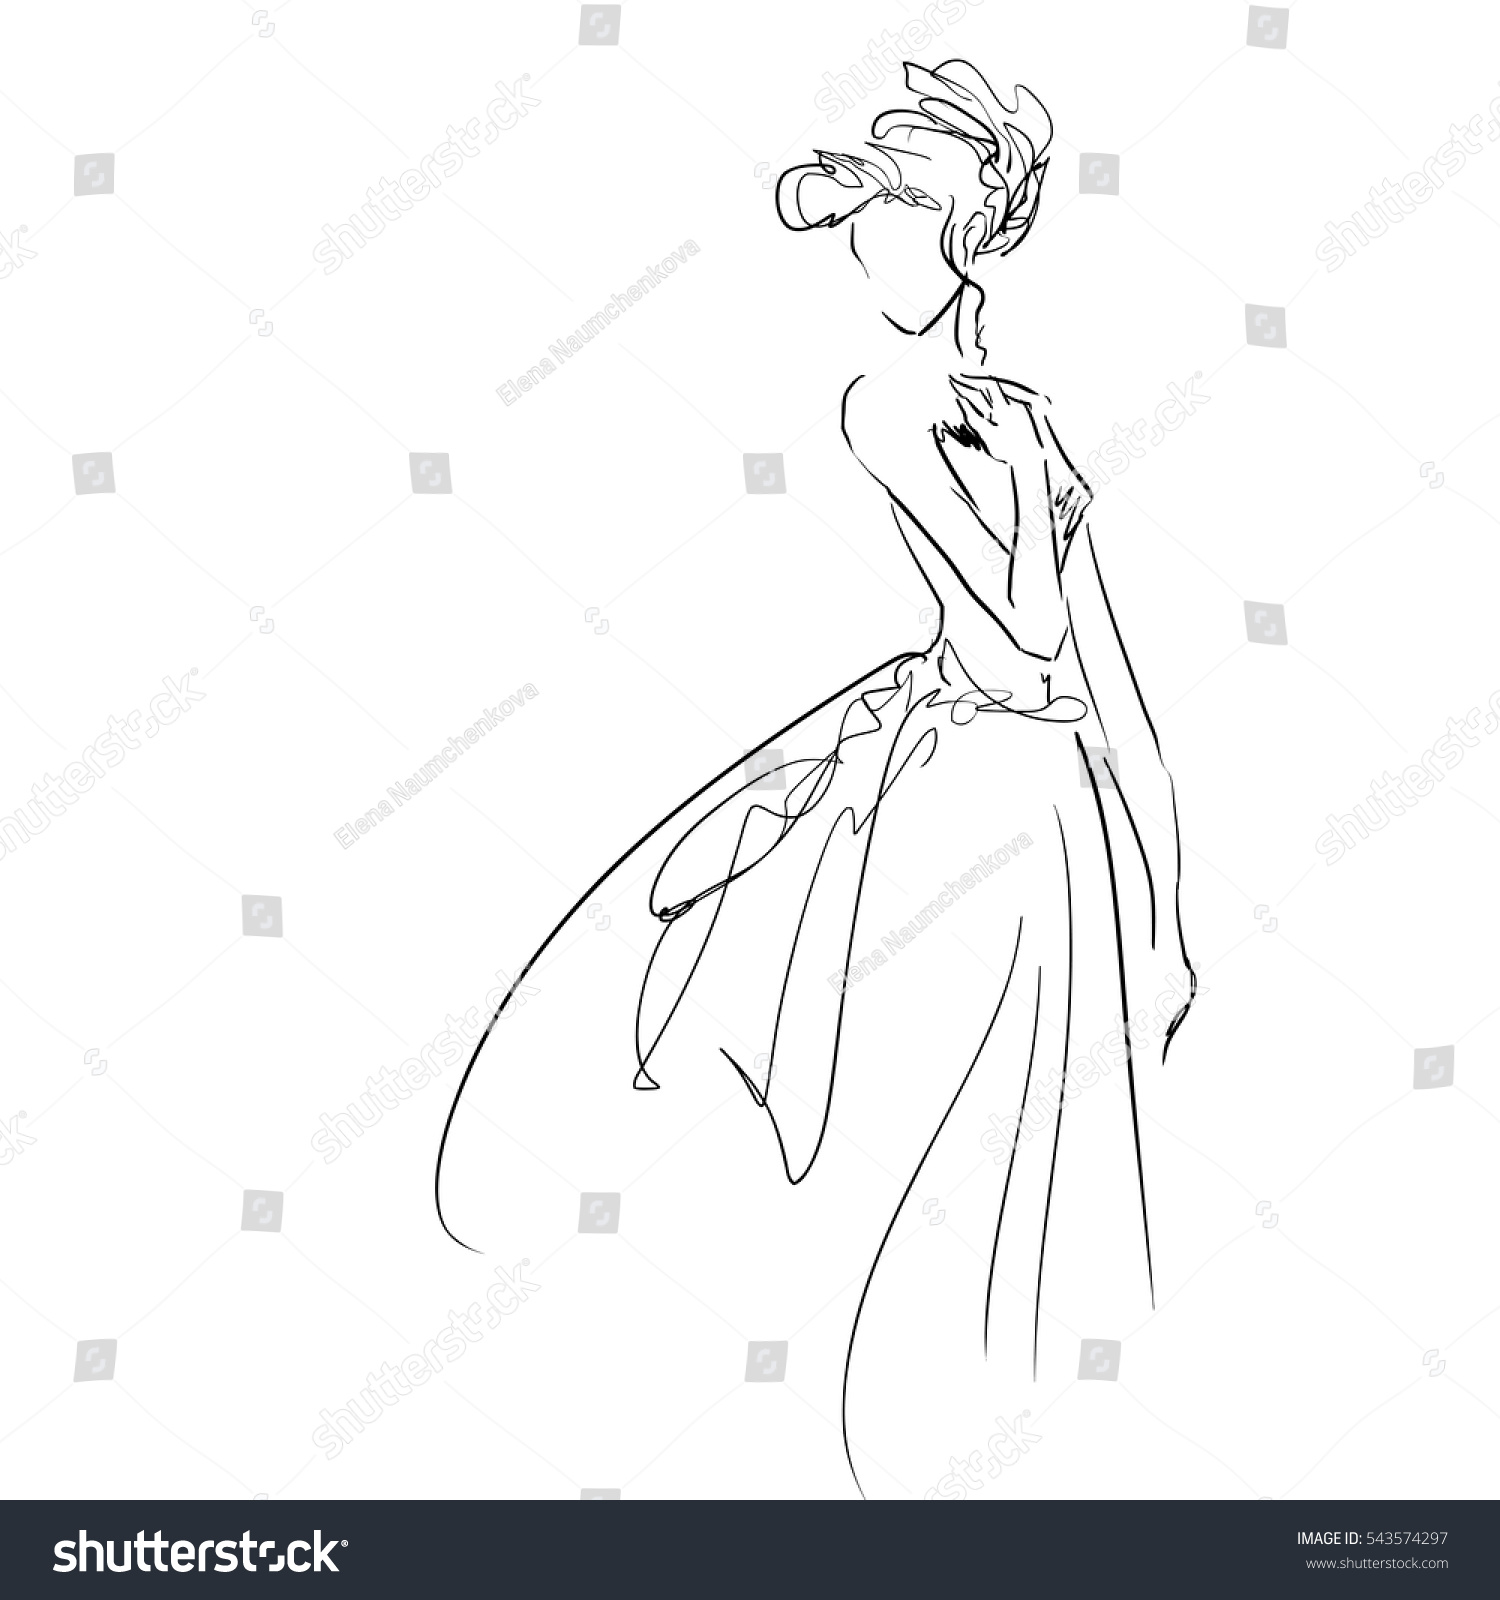 Drawing Lines Freehand : Vector freehand art elegant young woman stock